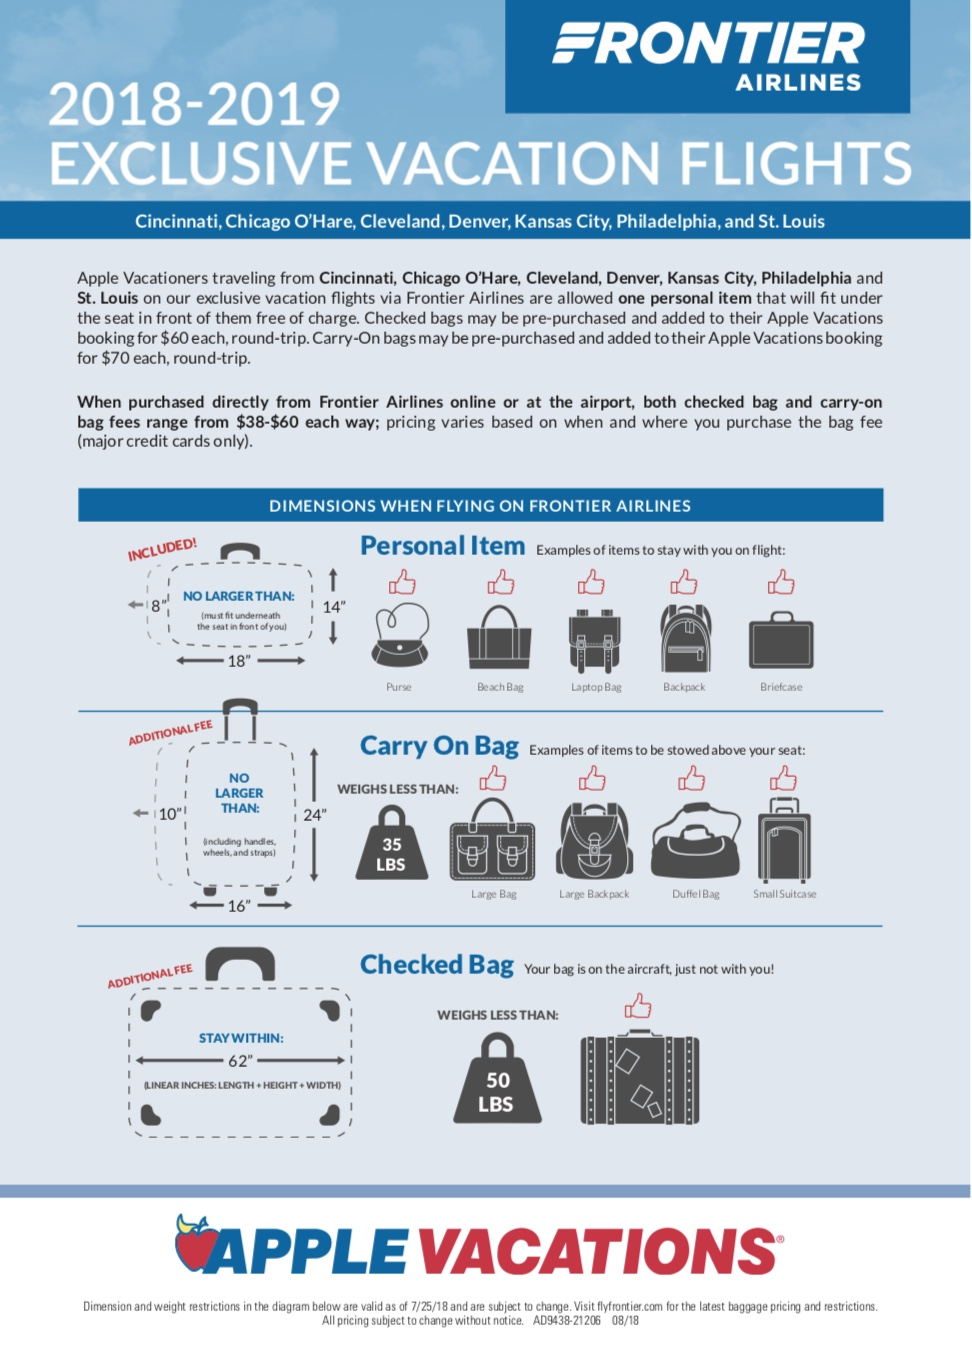 Please See The Image Below For More Information Regarding Bag Dimensions